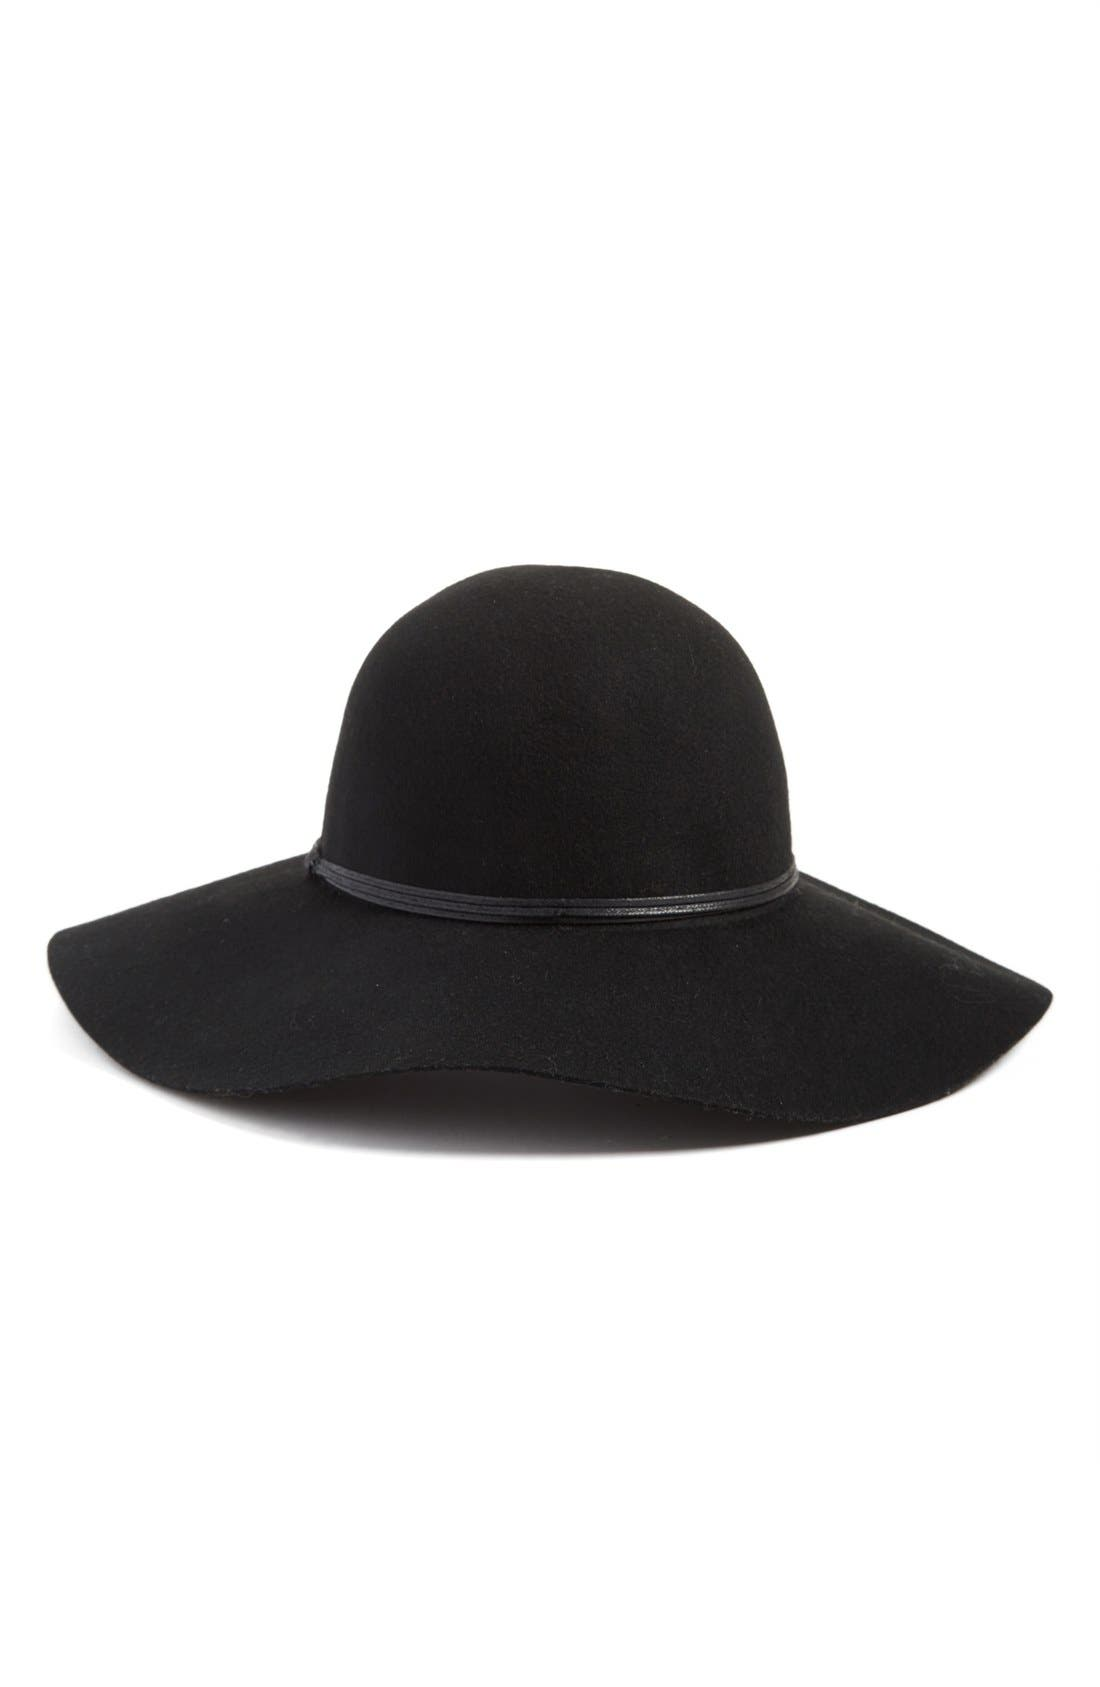 Floppy Wool Hat,                             Main thumbnail 1, color,